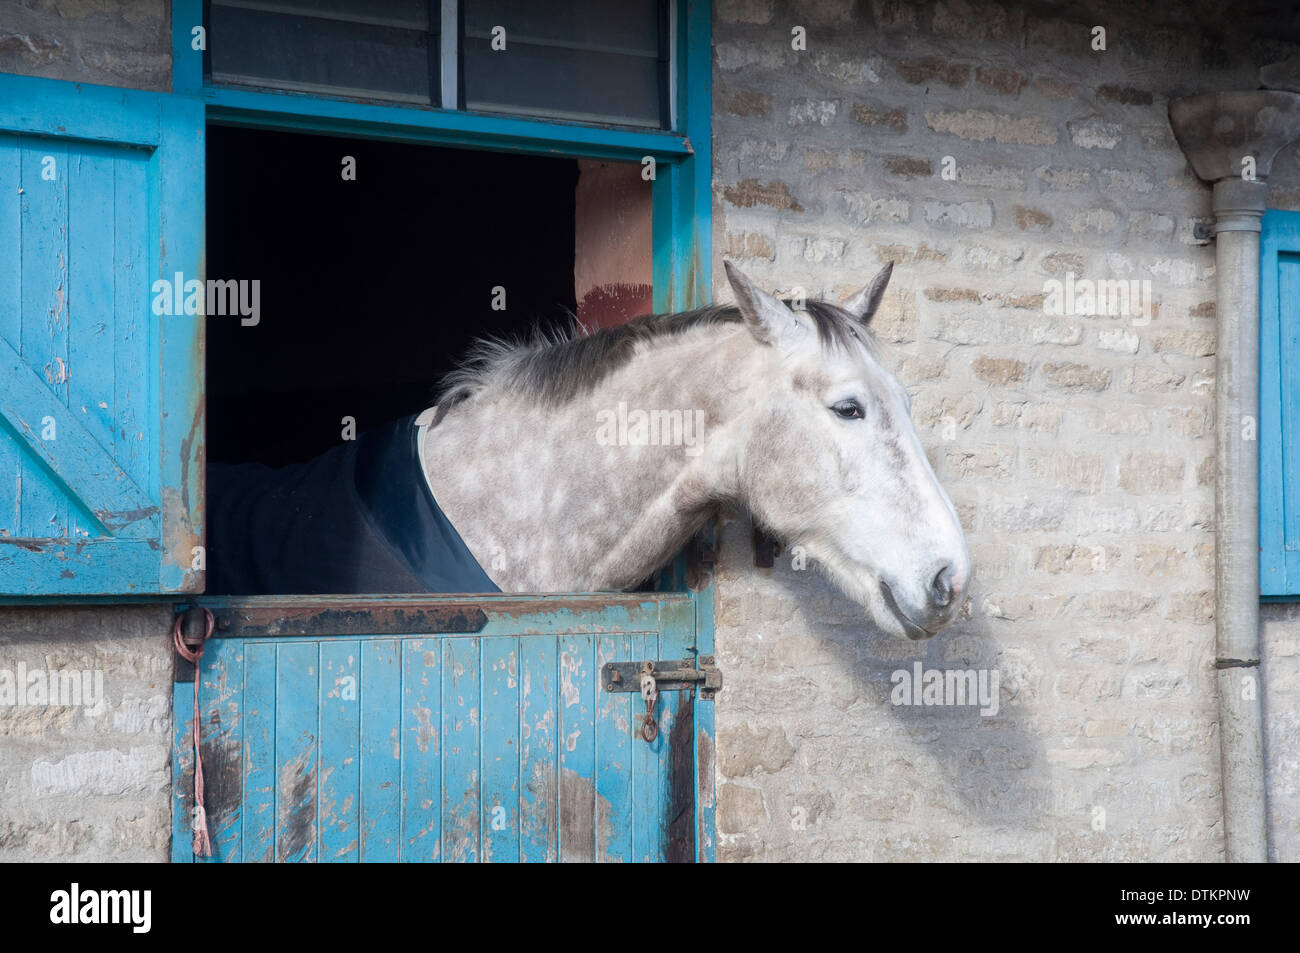 A dappled grey horse peering out of a stable door. UK. - Stock Image